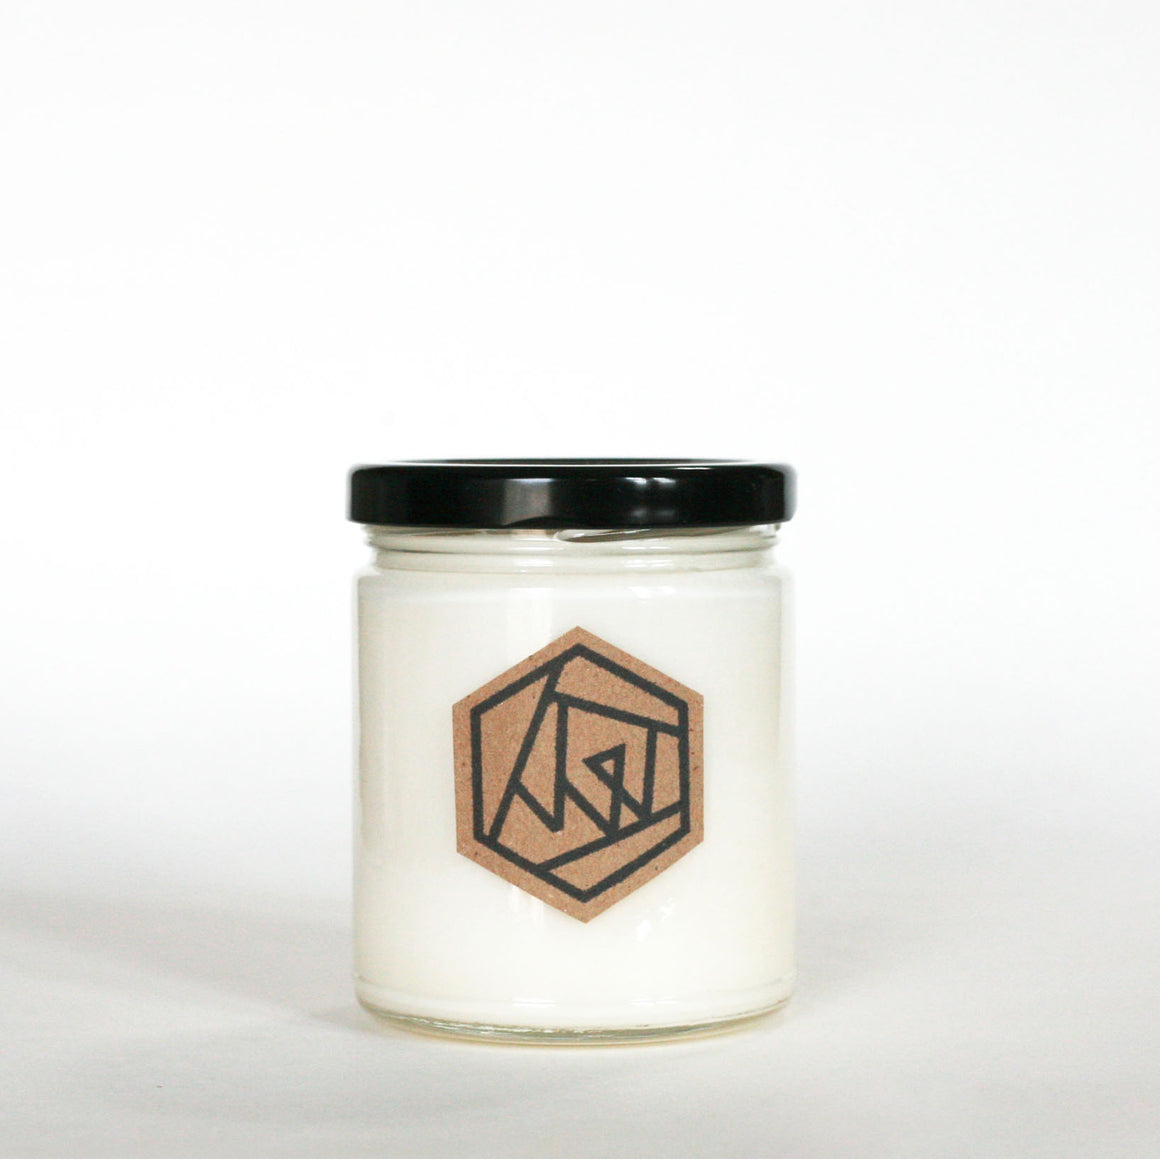 JUNIPER BERRY Everyday Eco Soy Candle